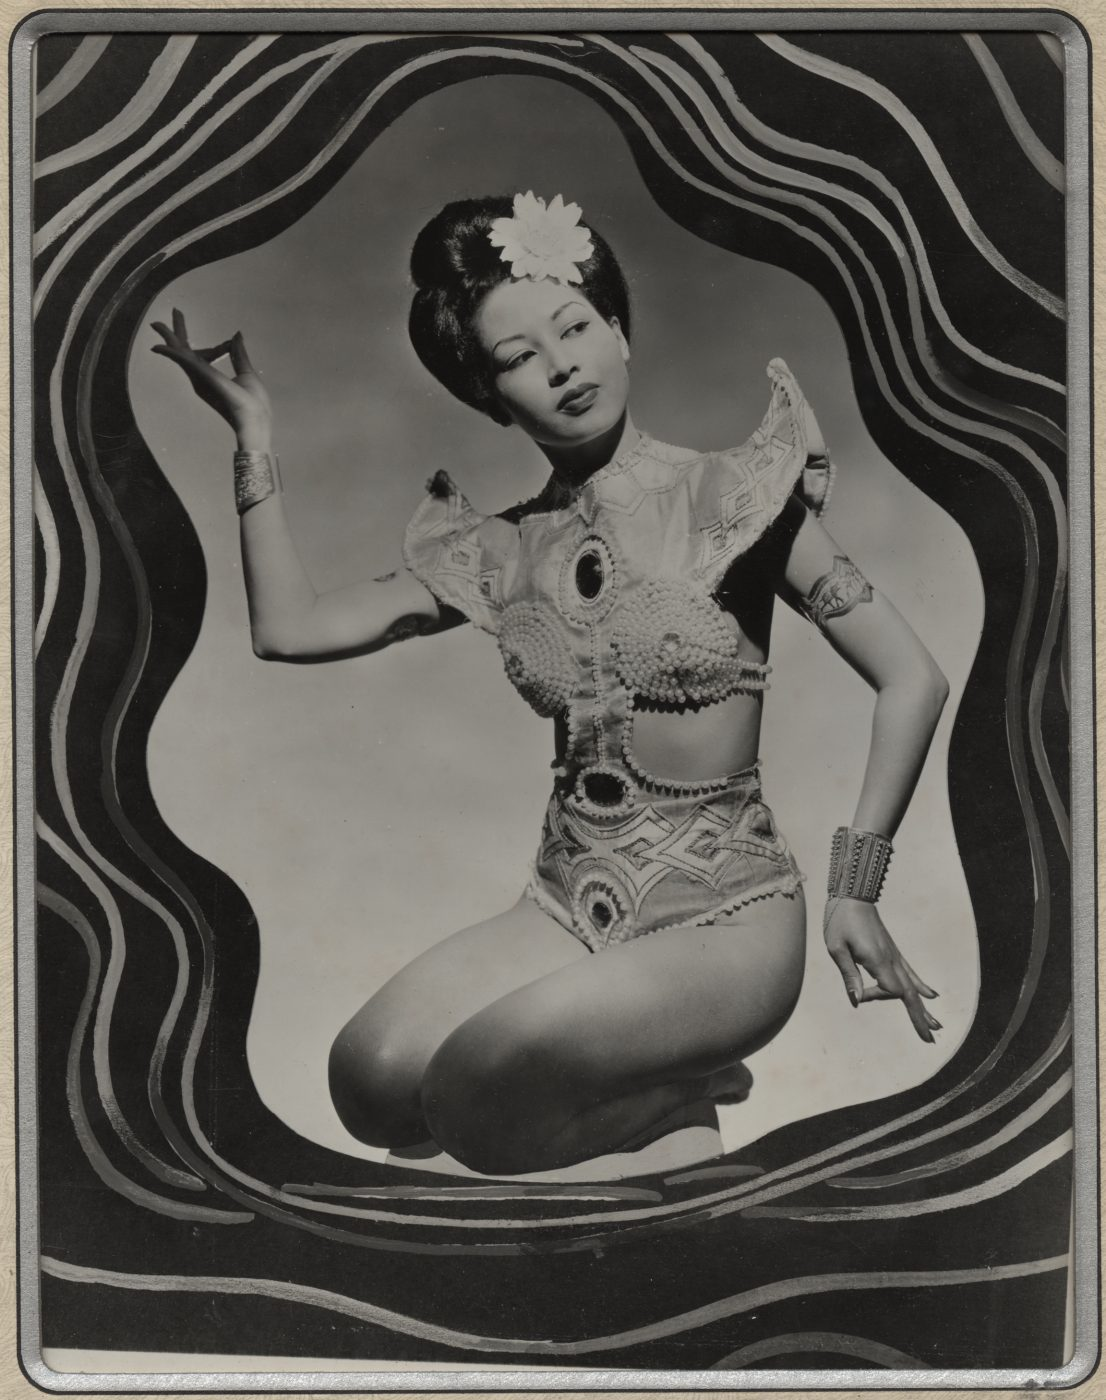 16 May 2019 Posted. Ming Chu Posing in Costume, Gift of Ming Chu Hohloch, Museum of Chinese in America (MOCA) Collection. 赵明身着演出服的舞姿,赵明捐赠,美国华人博物馆(MOCA)馆藏